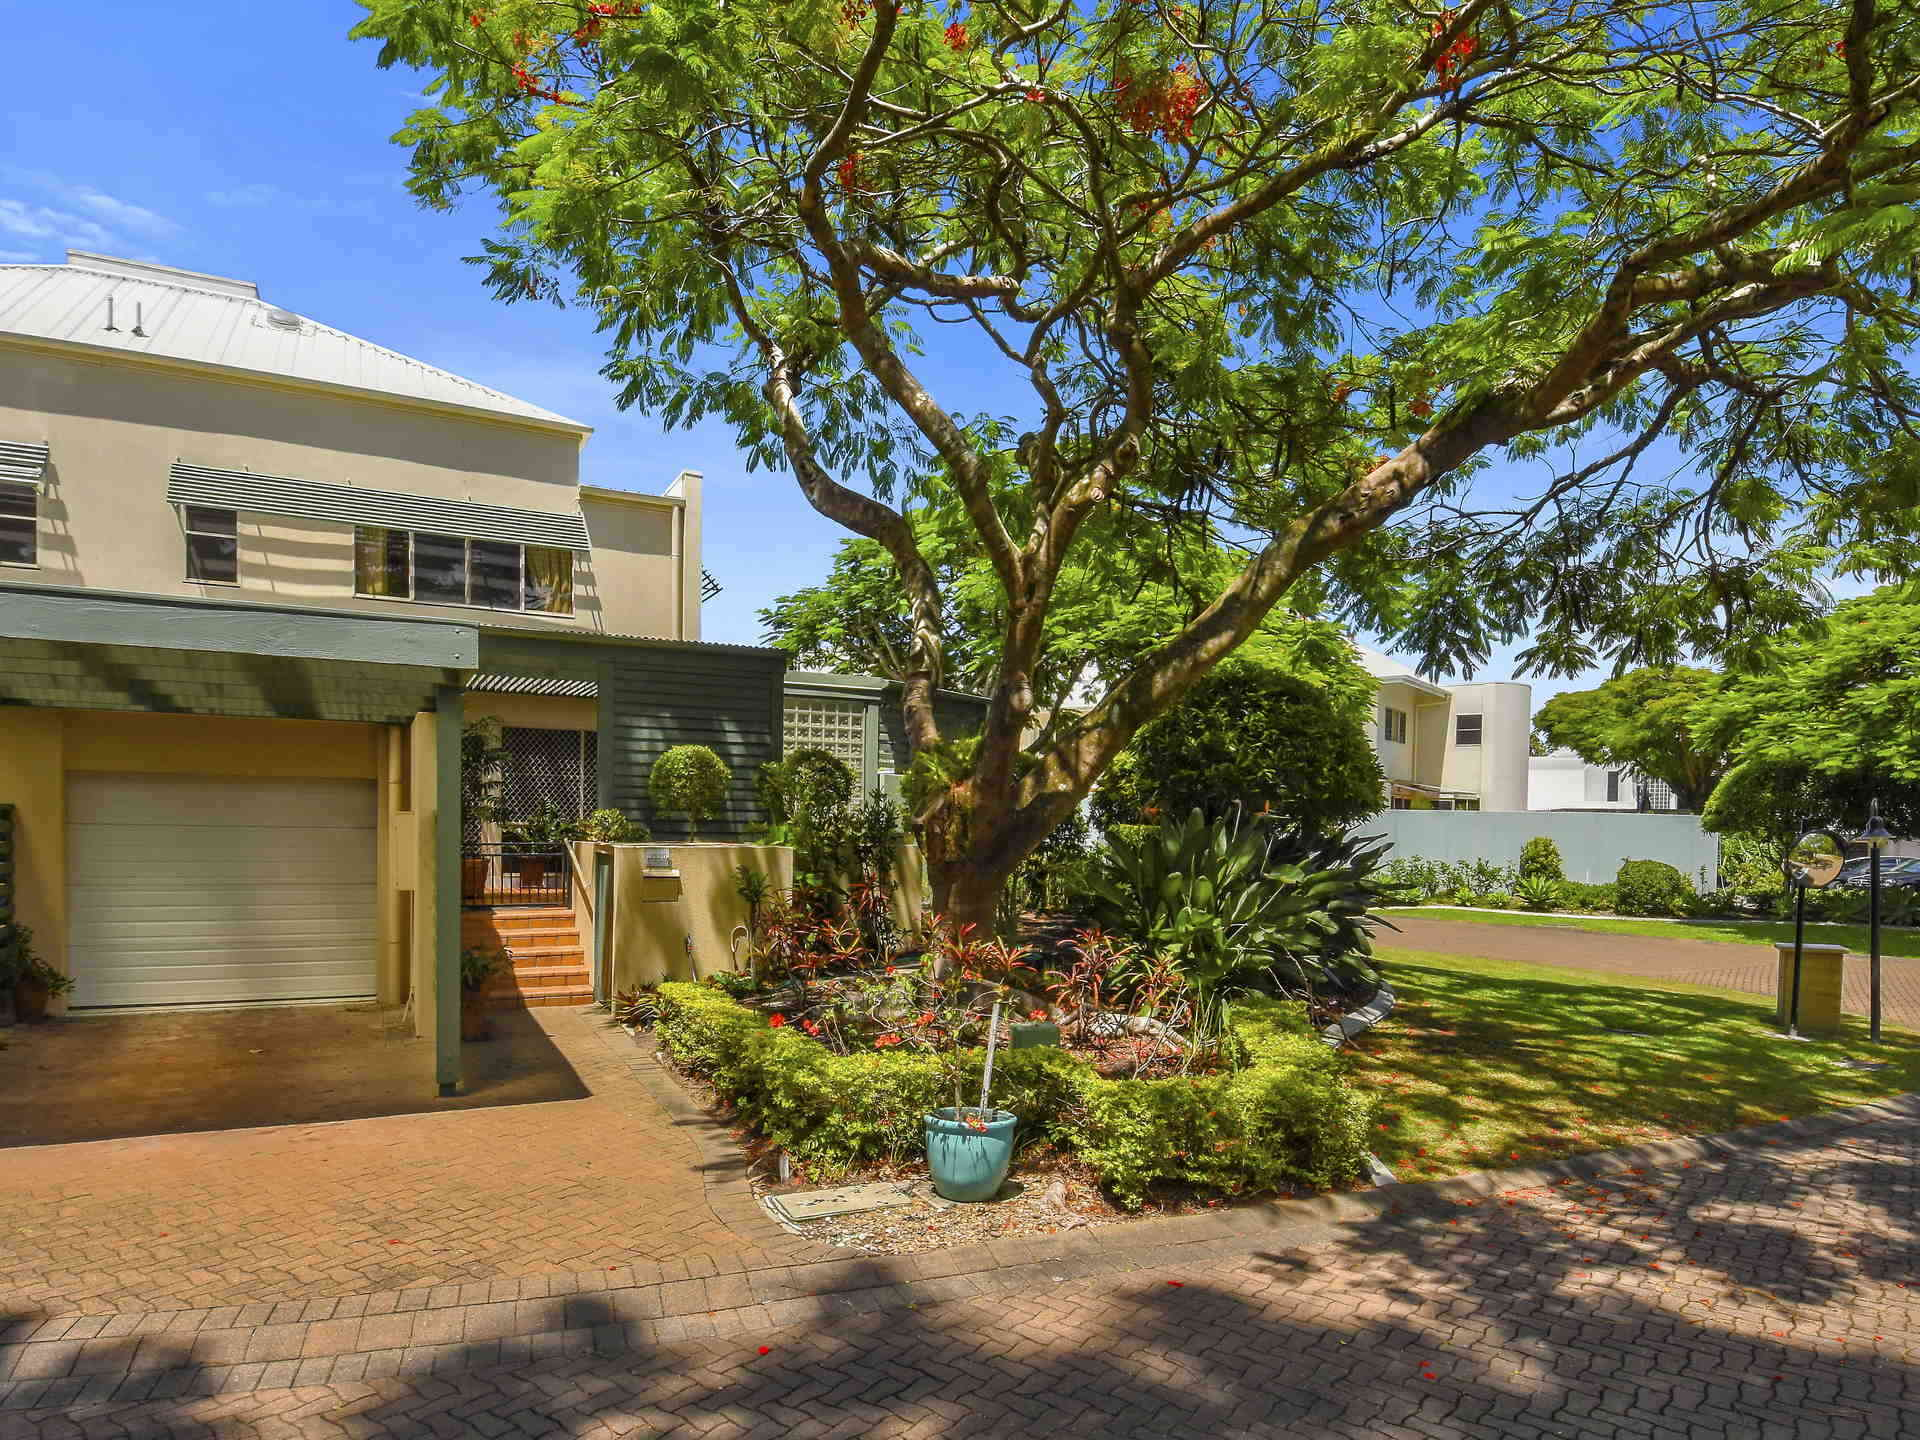 Real Estate   Gold Coast   Chevron Realty   005 Open2view Id494894 2120 Ross Street Royal Pines Benowa